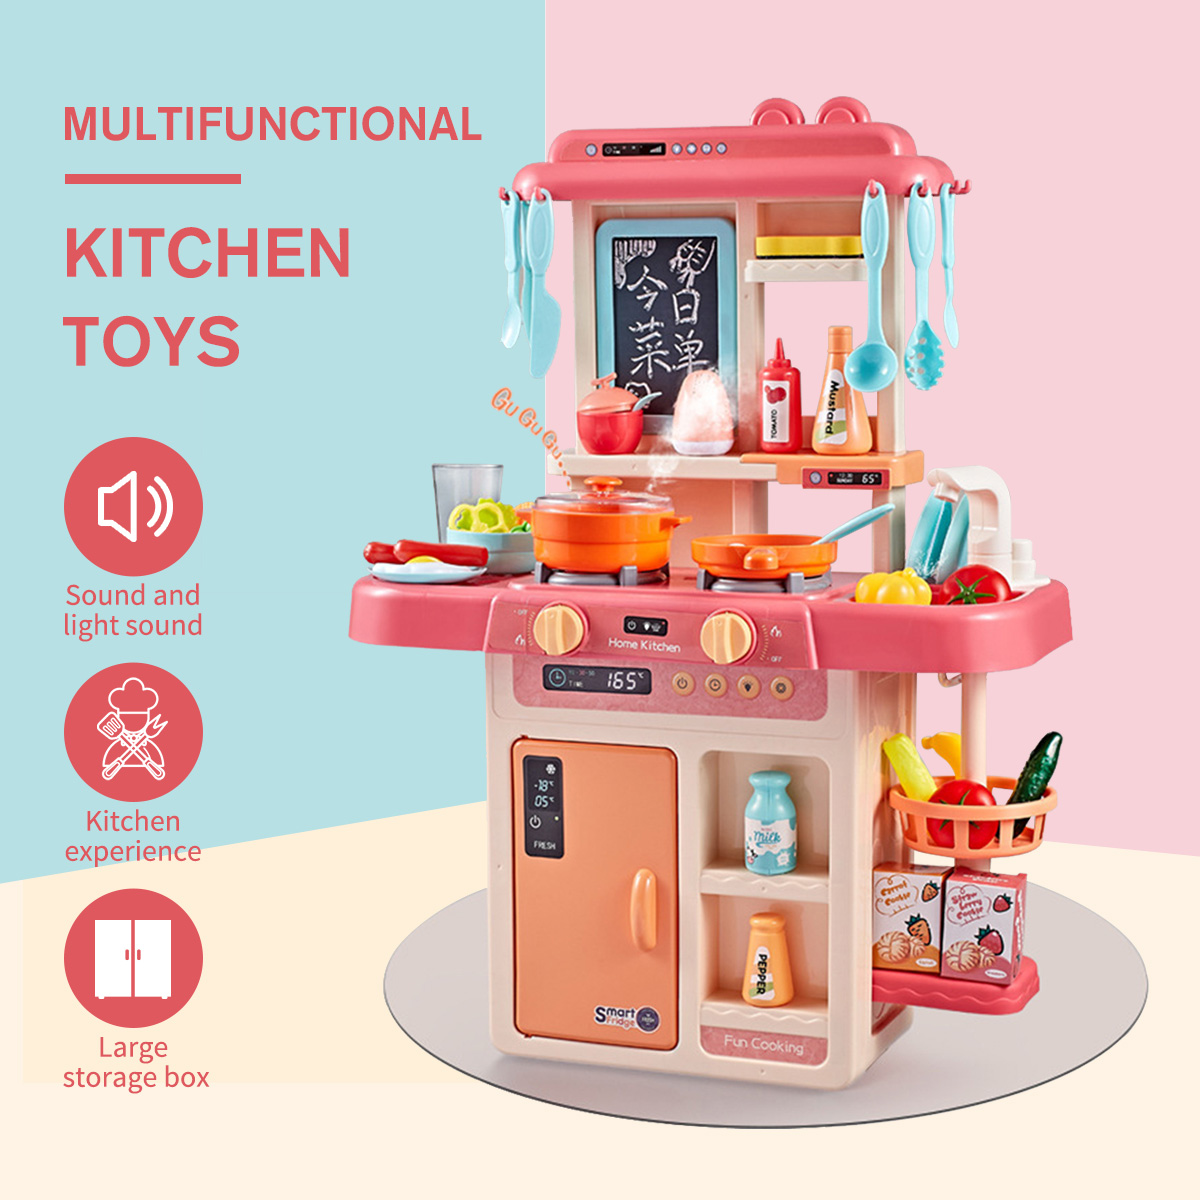 23/26/42Pcs Kid Kitchen Toy Simulation Kitchen Toy Spray Water Dinnerware Pretend Play Kitchen Cooking Table Set Children's Gift